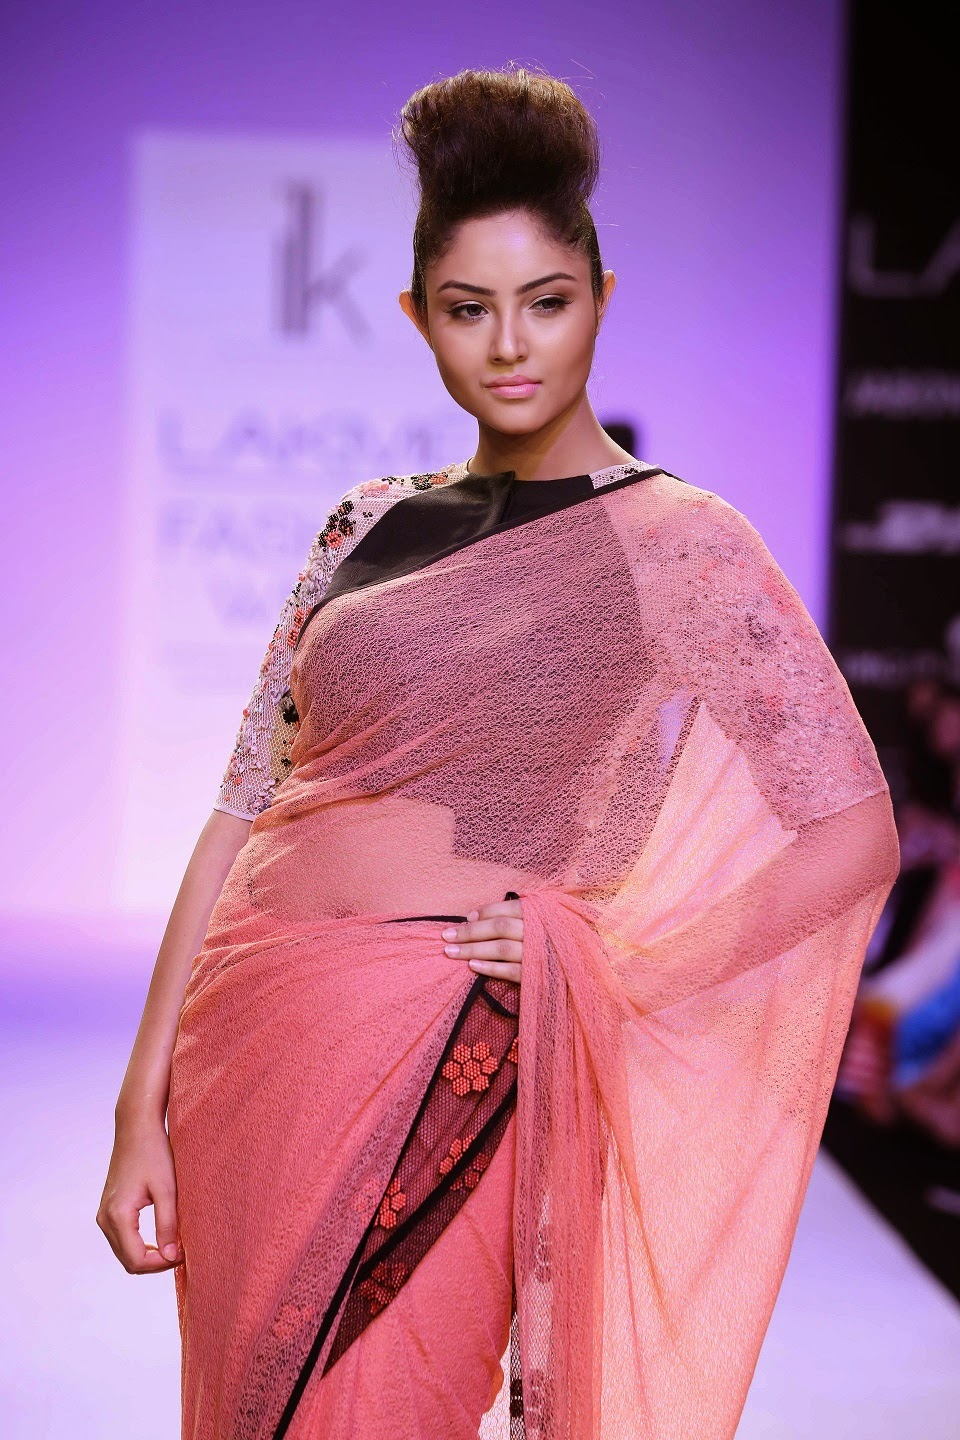 Washed out shades of beige, off-white, claret and grey had large doses of black for fabrics that ranged from mul and chiffon to tulle, voile, satin and lace. Pallavi paid attention to detailing as she added appliqués, French knots, pearls and ribbing to highlight the garments